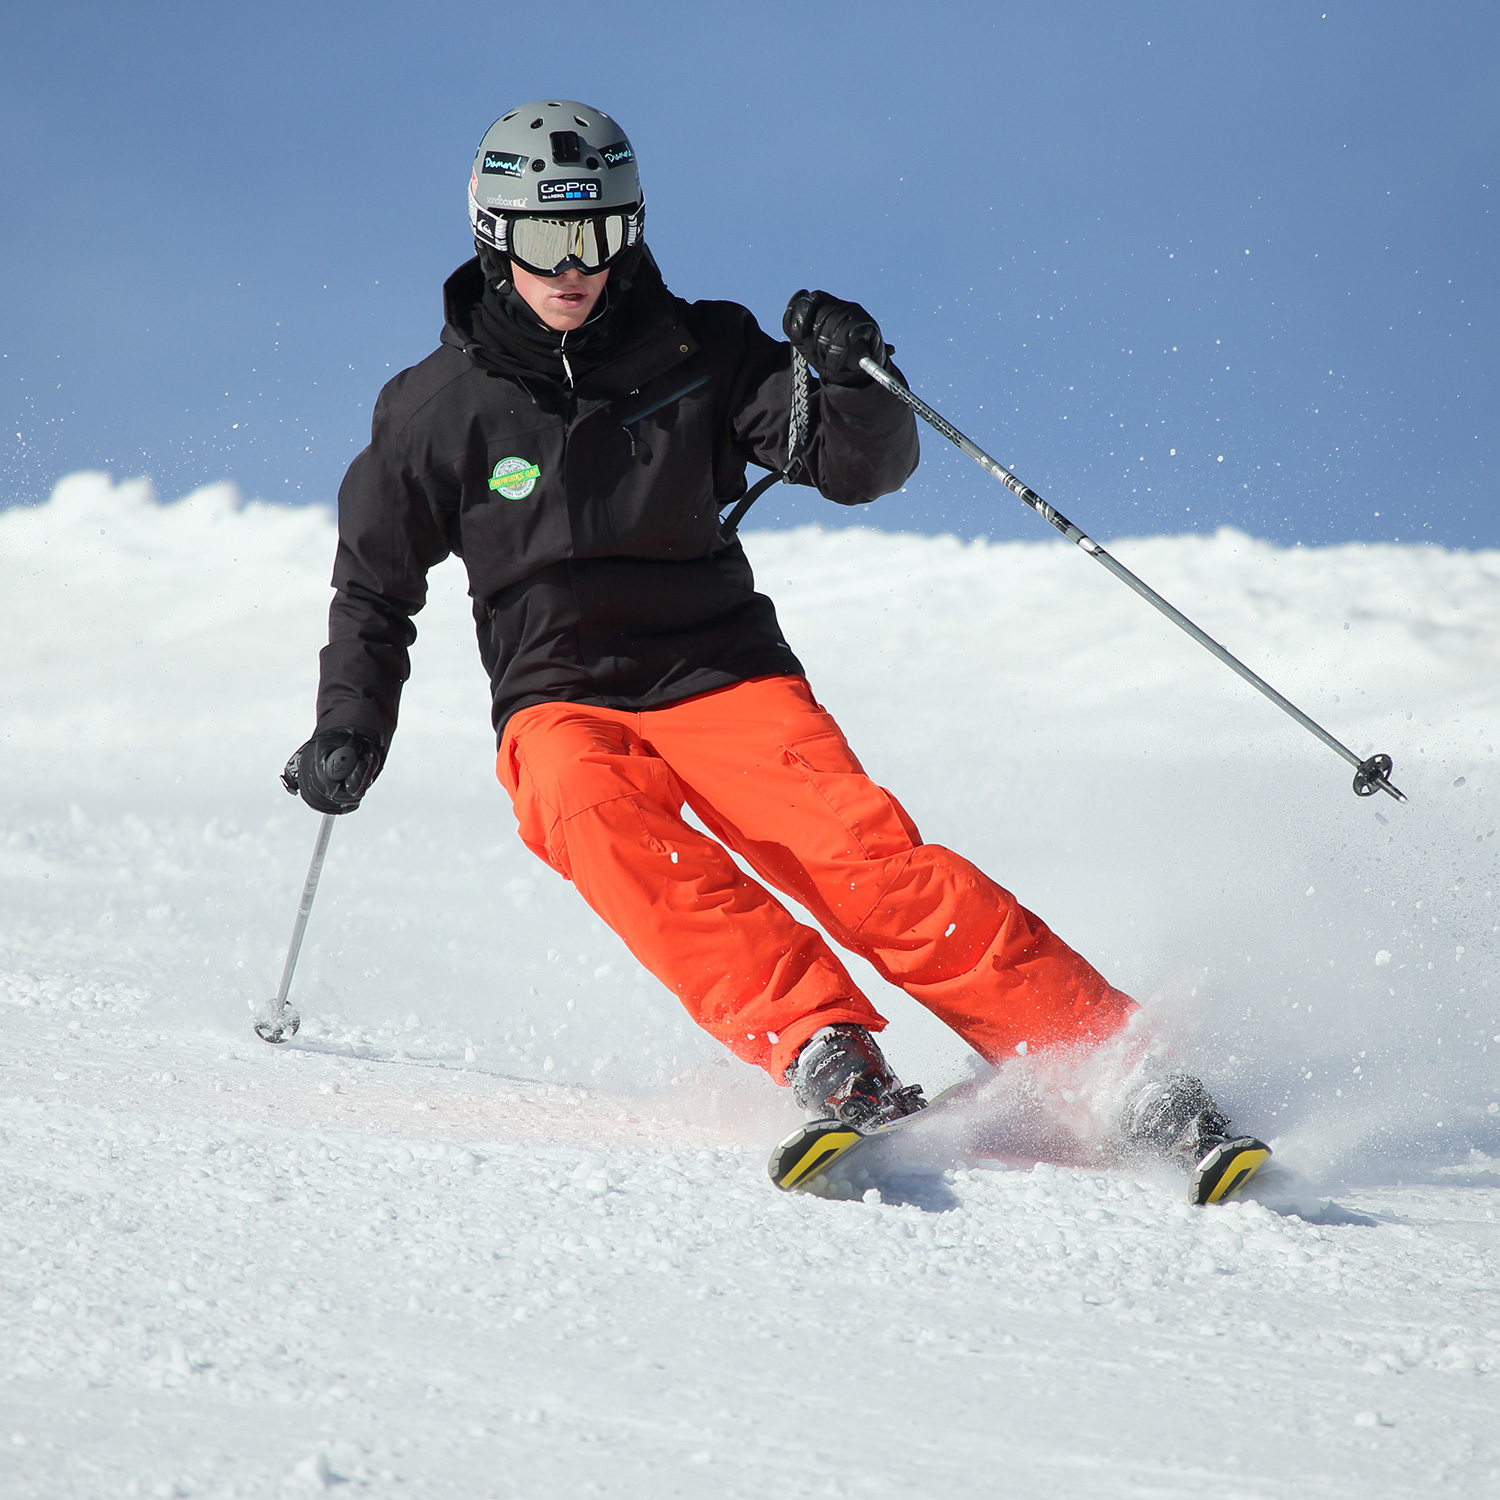 Snoworks GAP ski instructor trainee